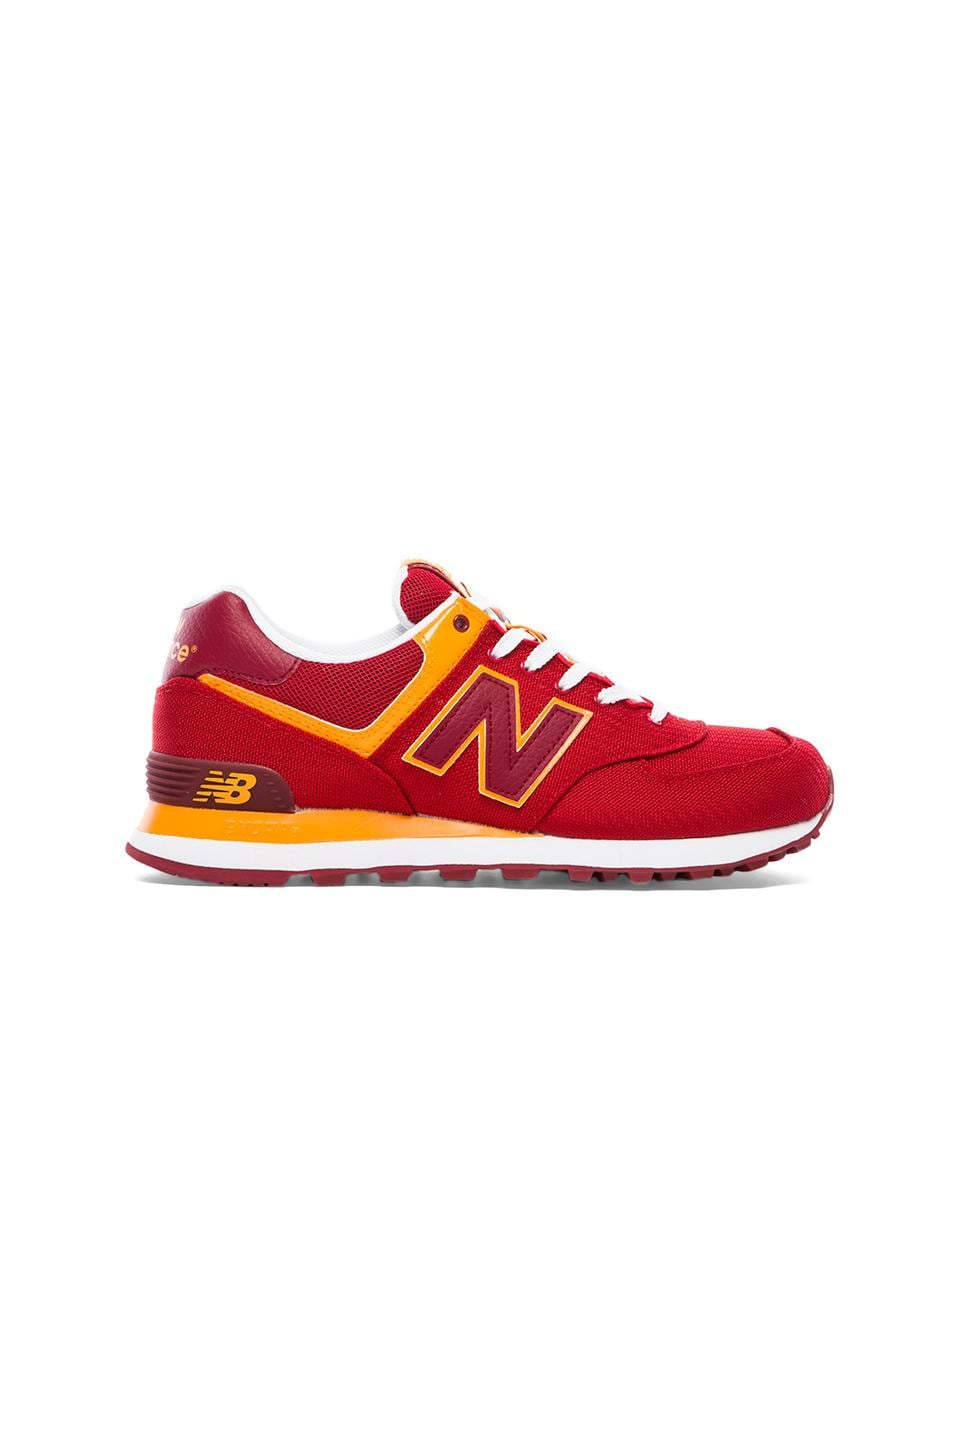 New Balance Passport ML574 in Red